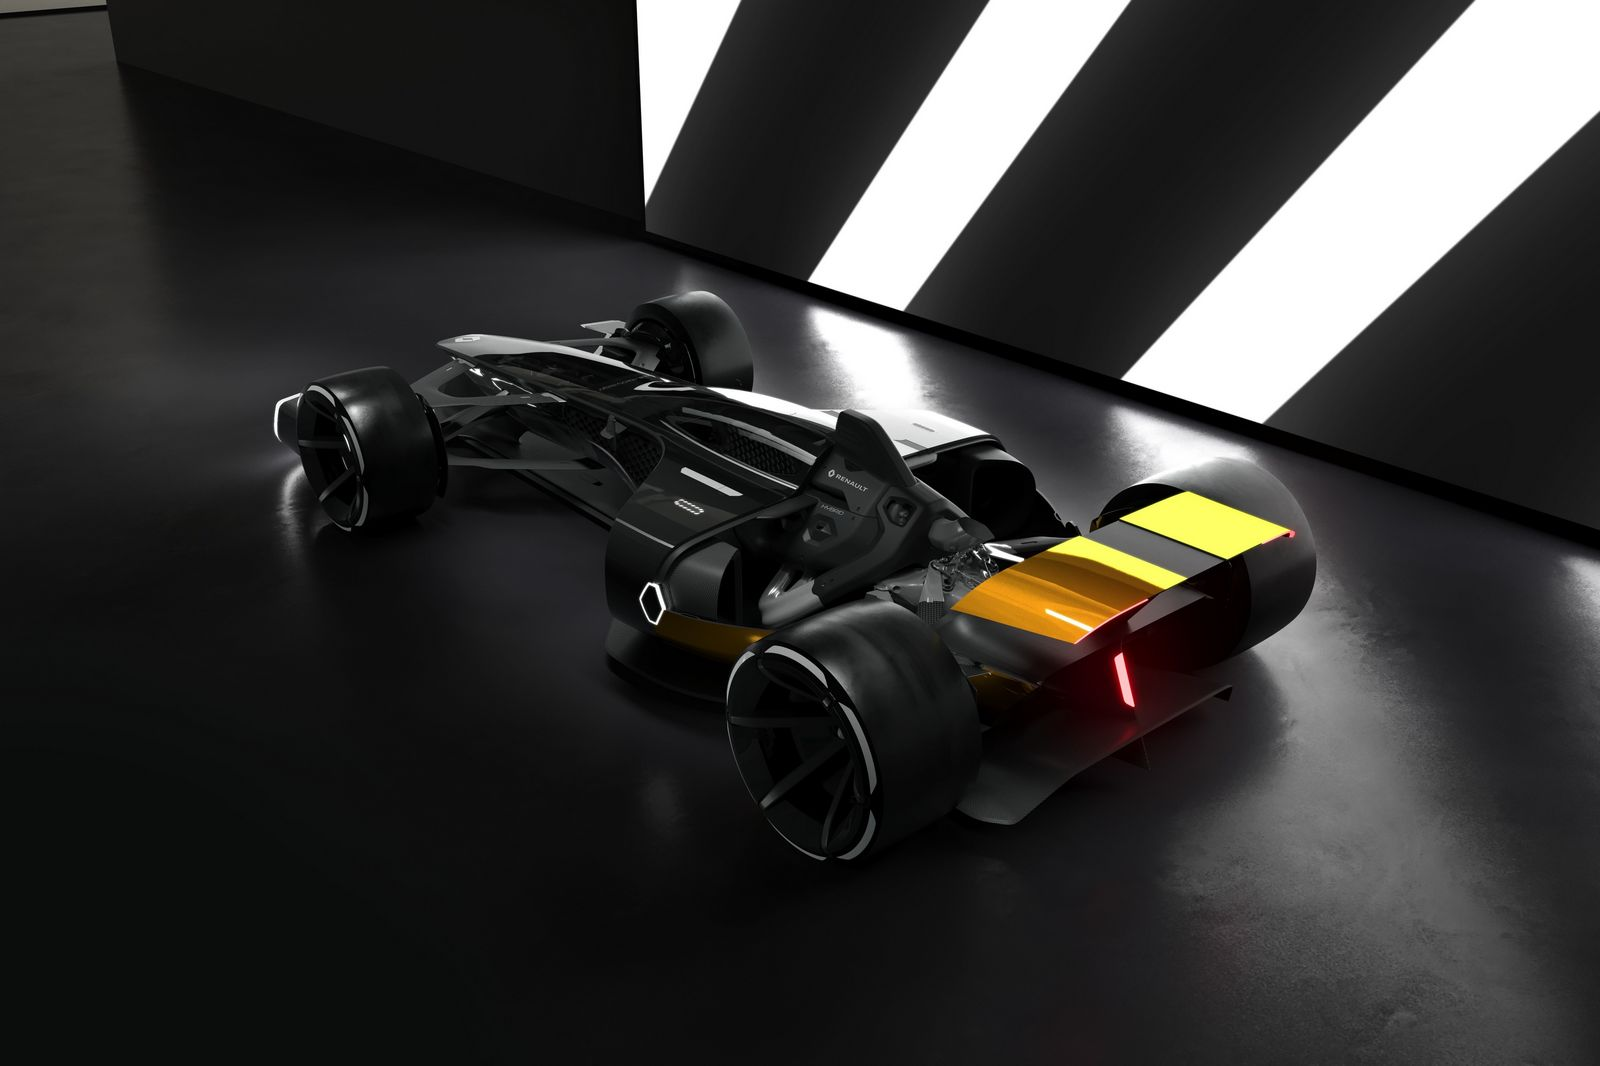 Renault RS 2027 Vision concept (23)